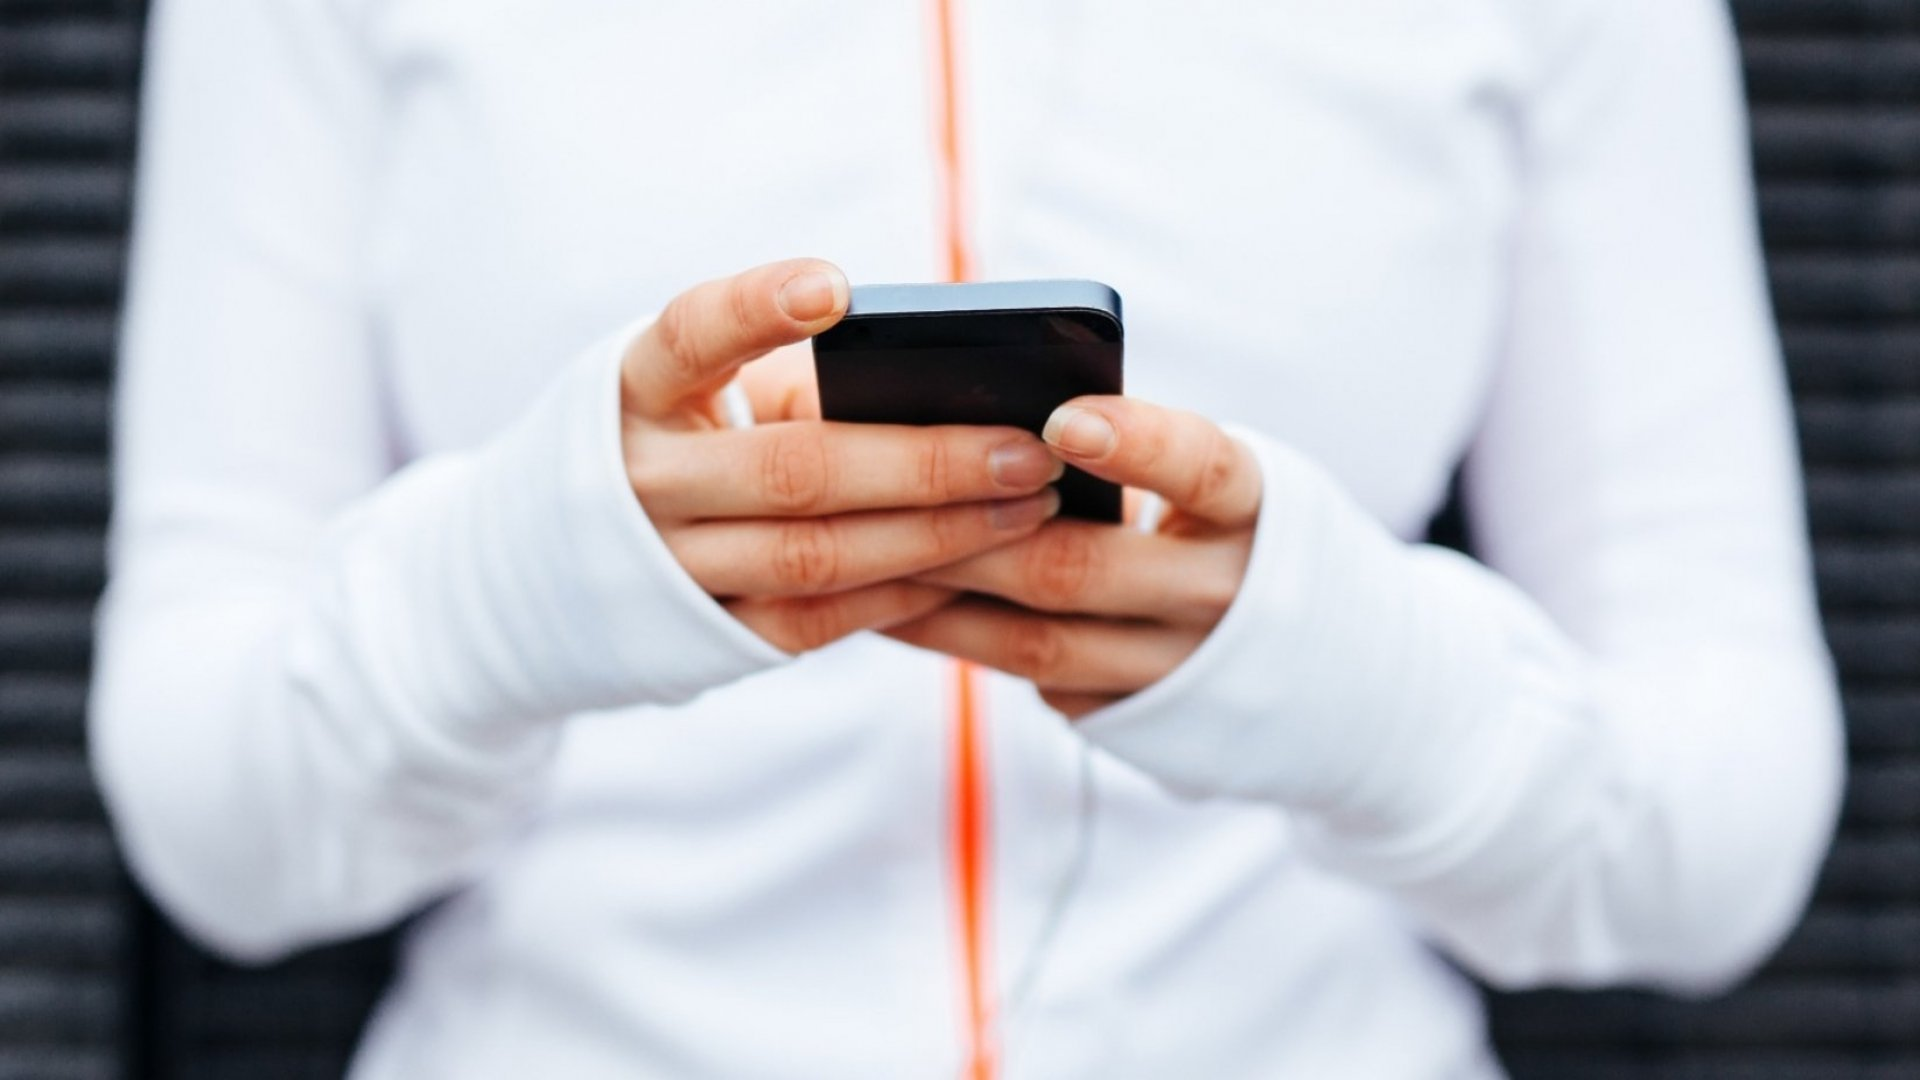 These 10 Apps Give You That Extra Boost to Work Out--Even When You're Super Busy